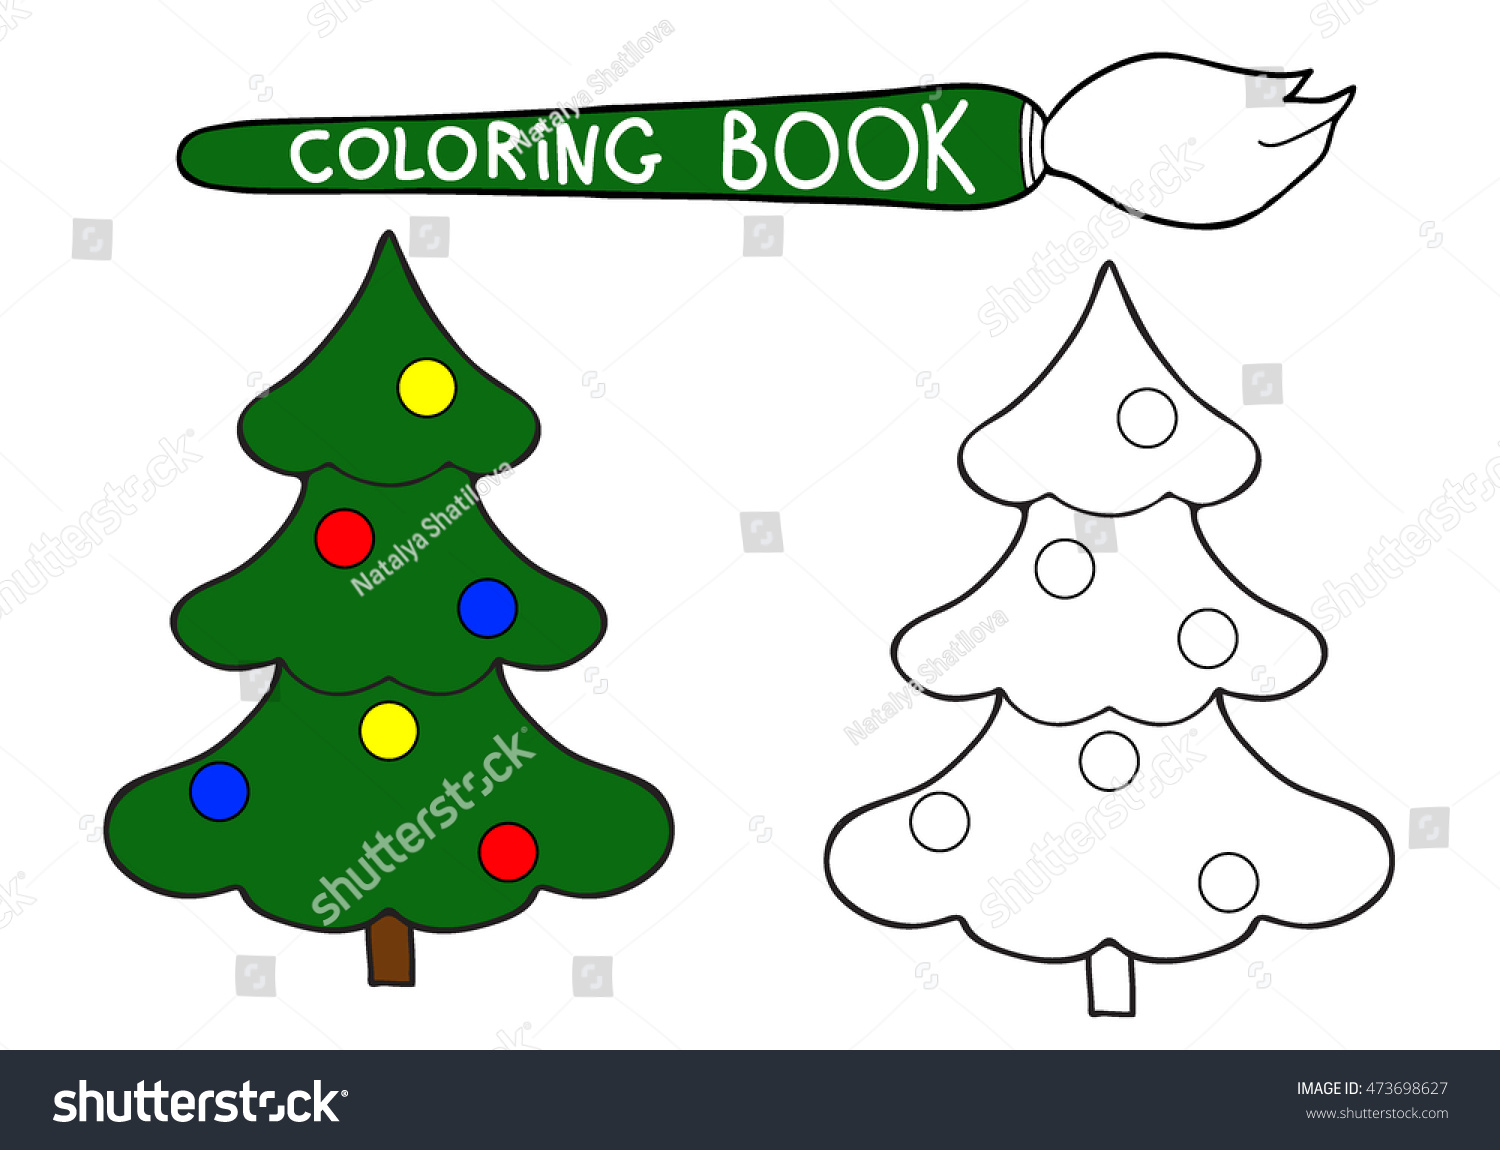 Coloring Book Hand Drawn Black White Stock Photo (Photo, Vector ...